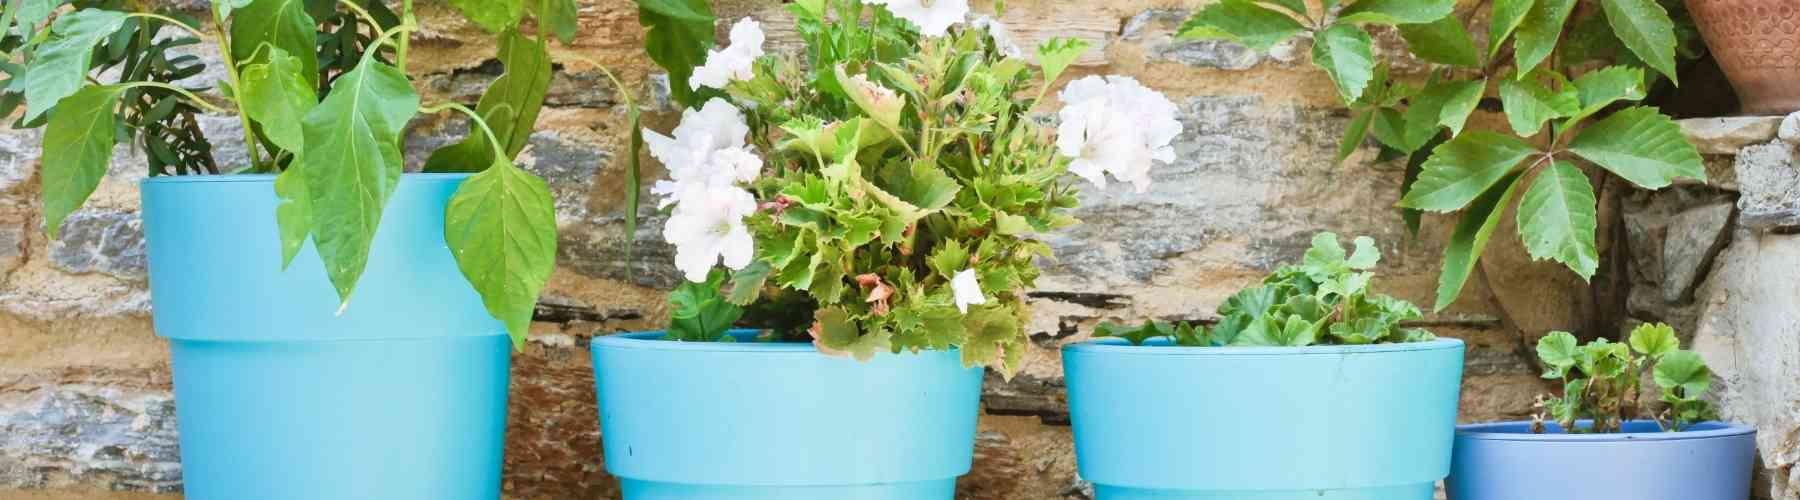 Crafts to Make and Sell - Plant Pots